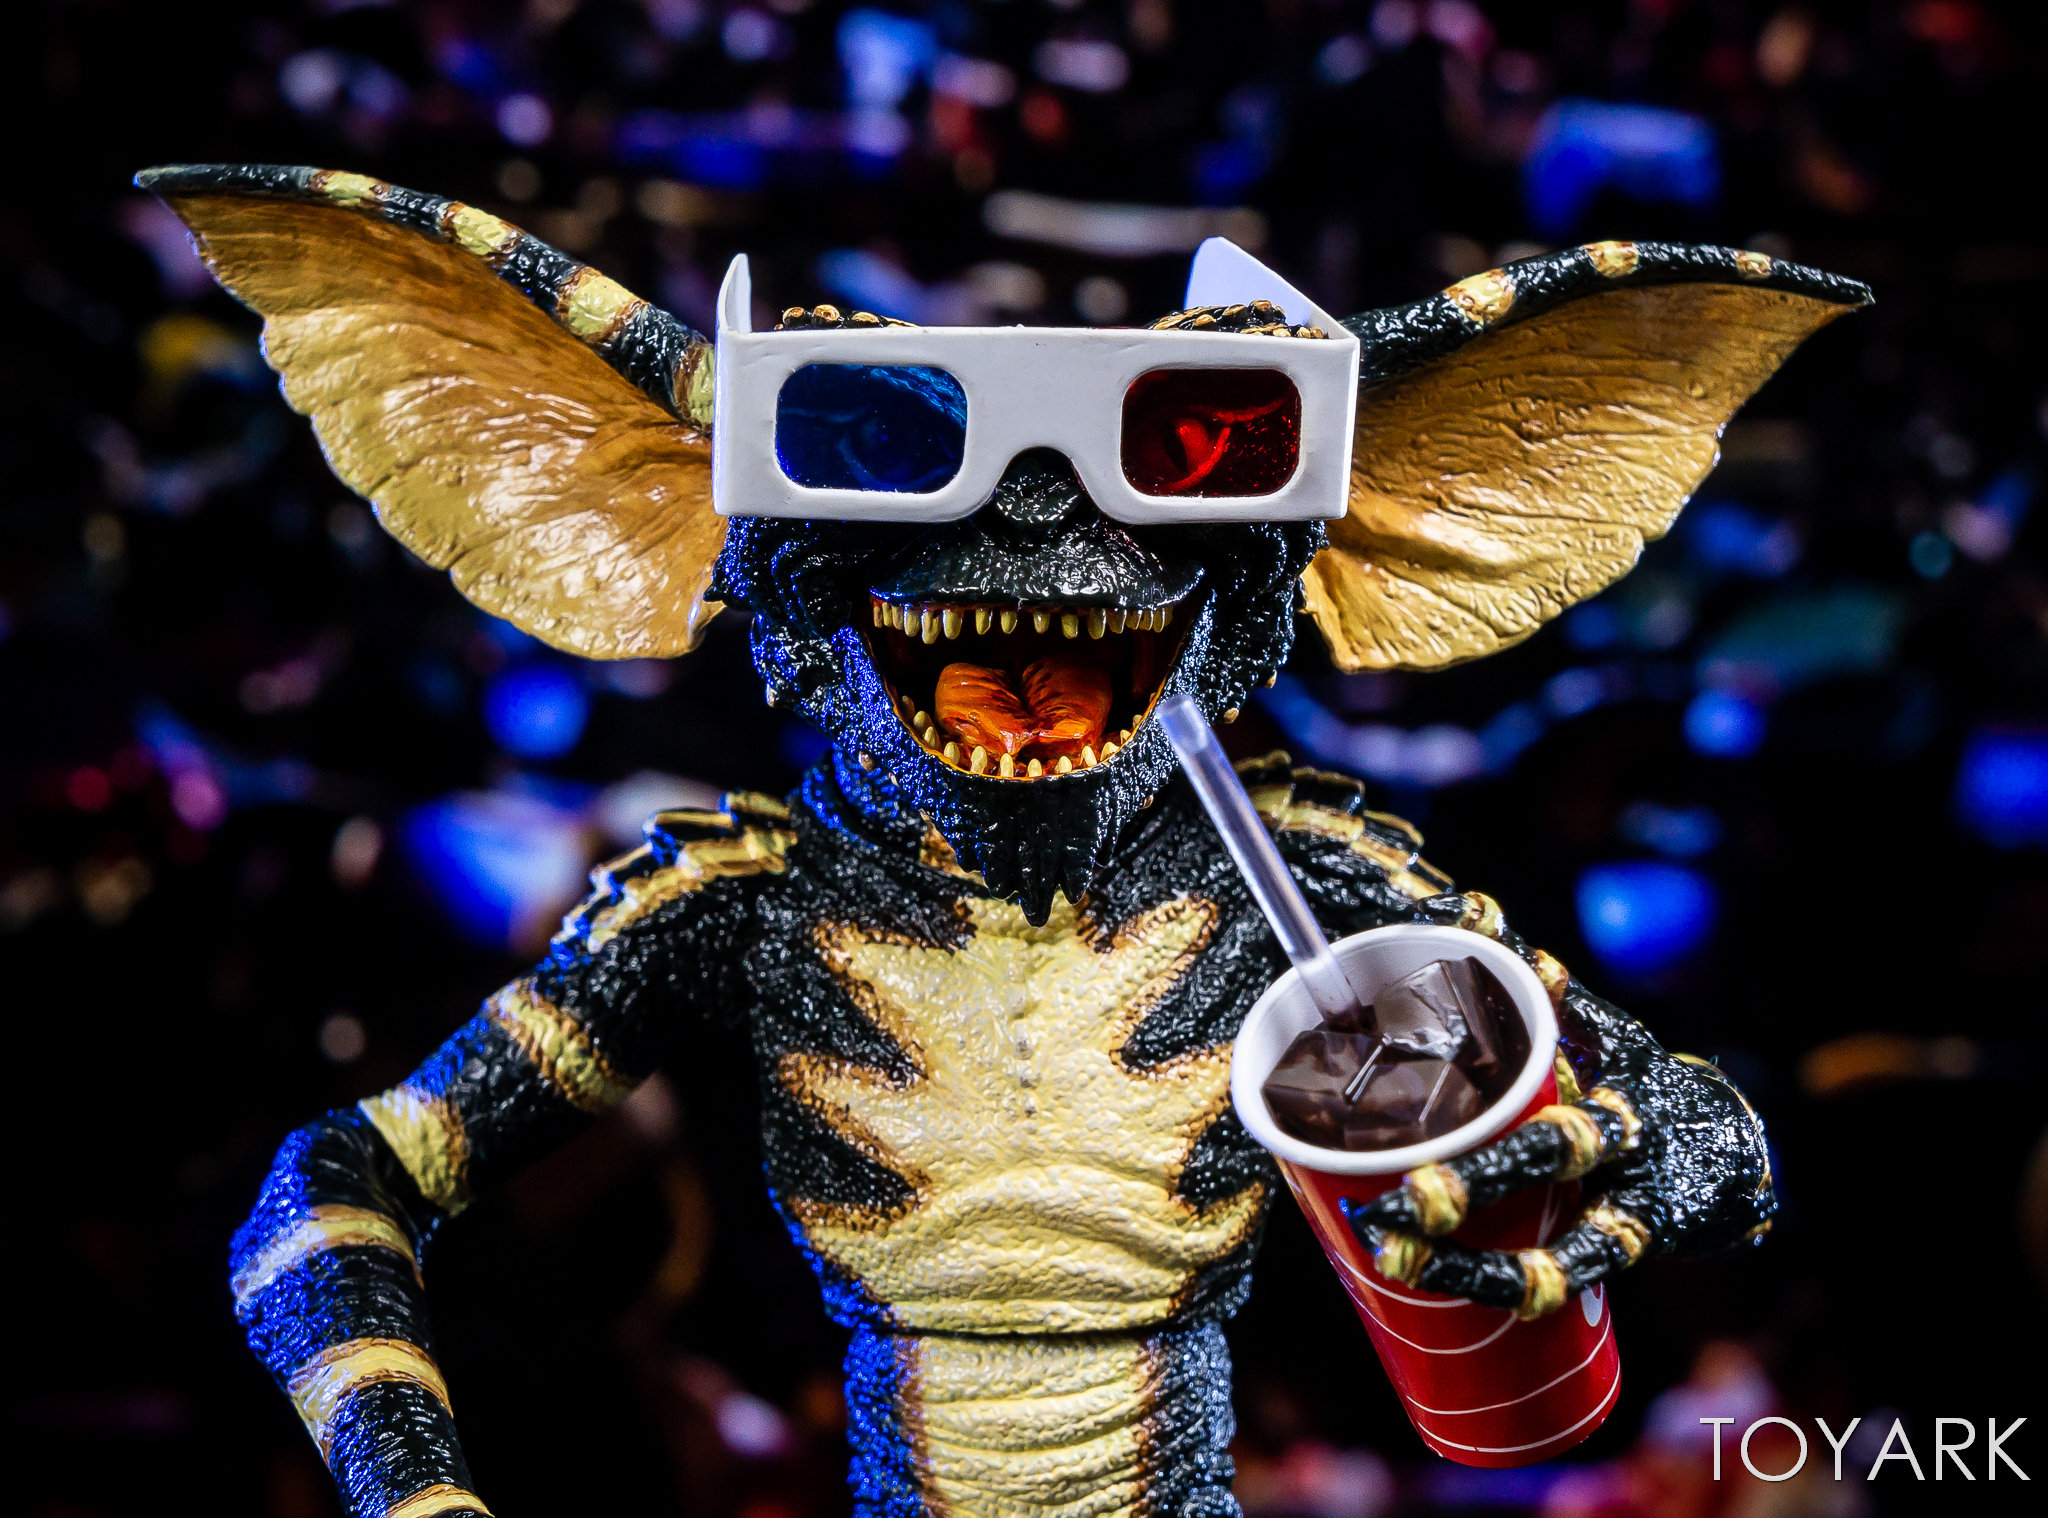 https://news.toyark.com/wp-content/uploads/sites/4/2018/11/Ultimate-NECA-Gremlin-Figure-017.jpg